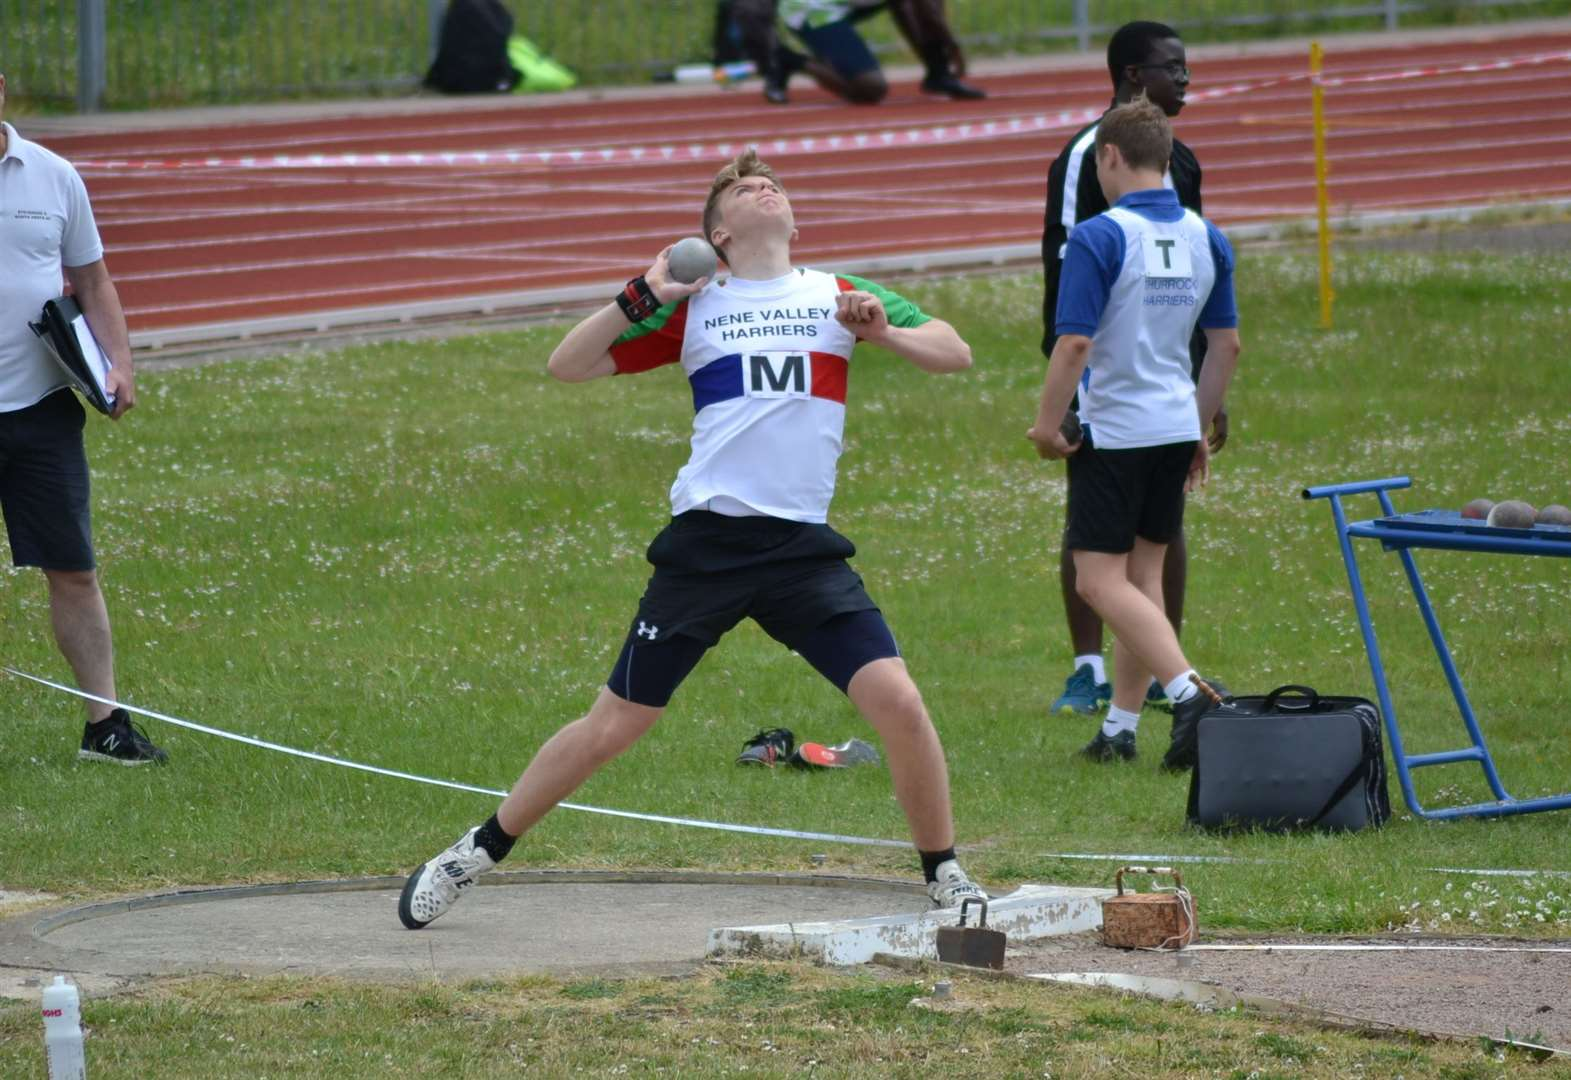 ATHLETICS: Wins in shot and discus for Donovan Capes